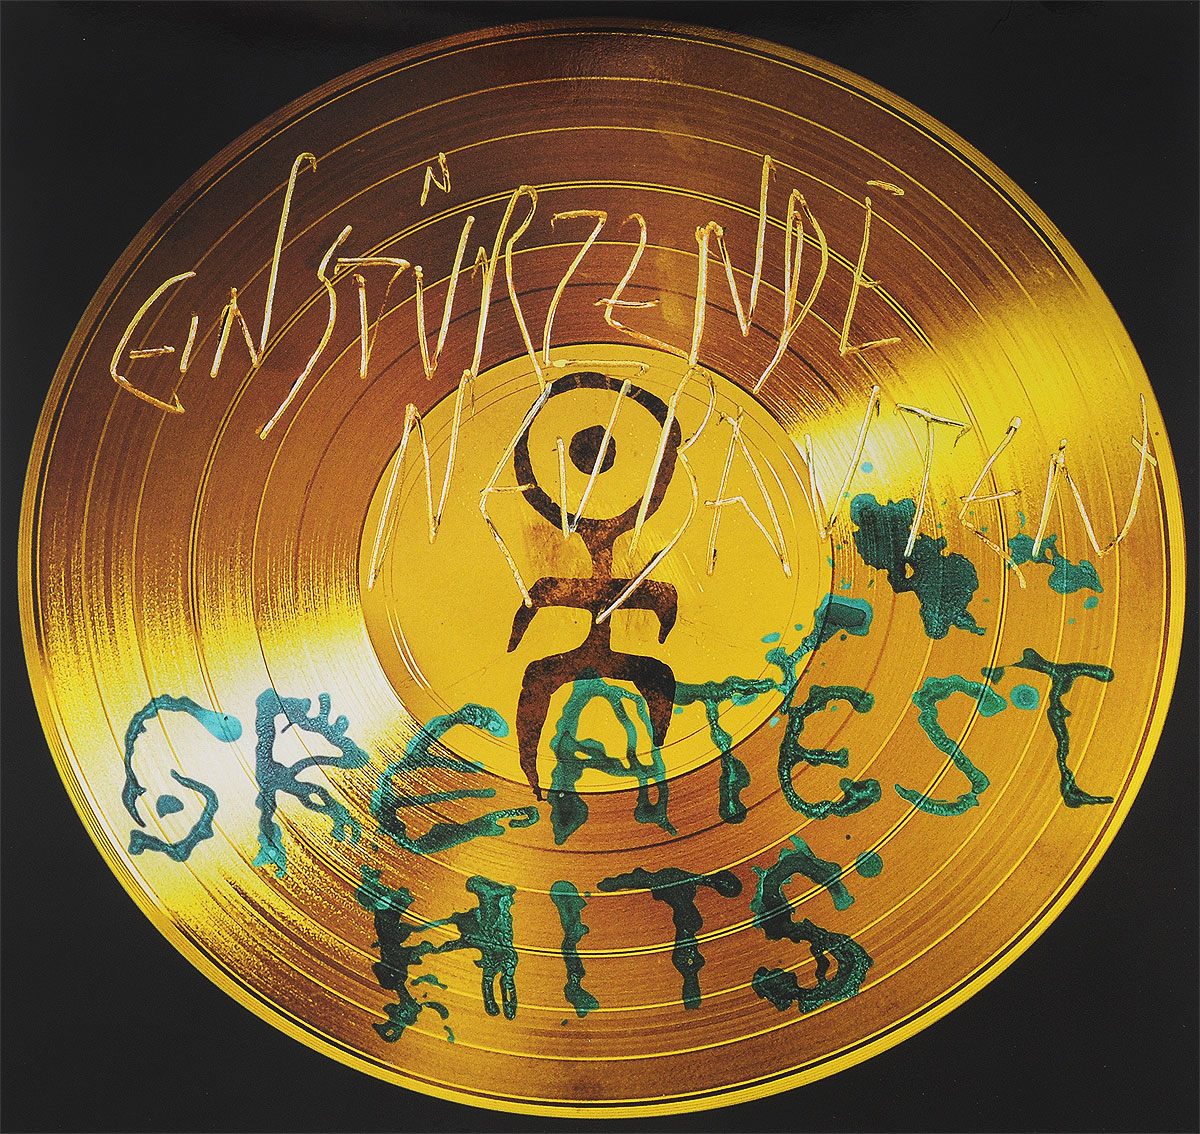 Einsturzende Neubauten Einsturzende Neubauten. Greatest Hits (2 LP) journey journey greatest hits 2 lp